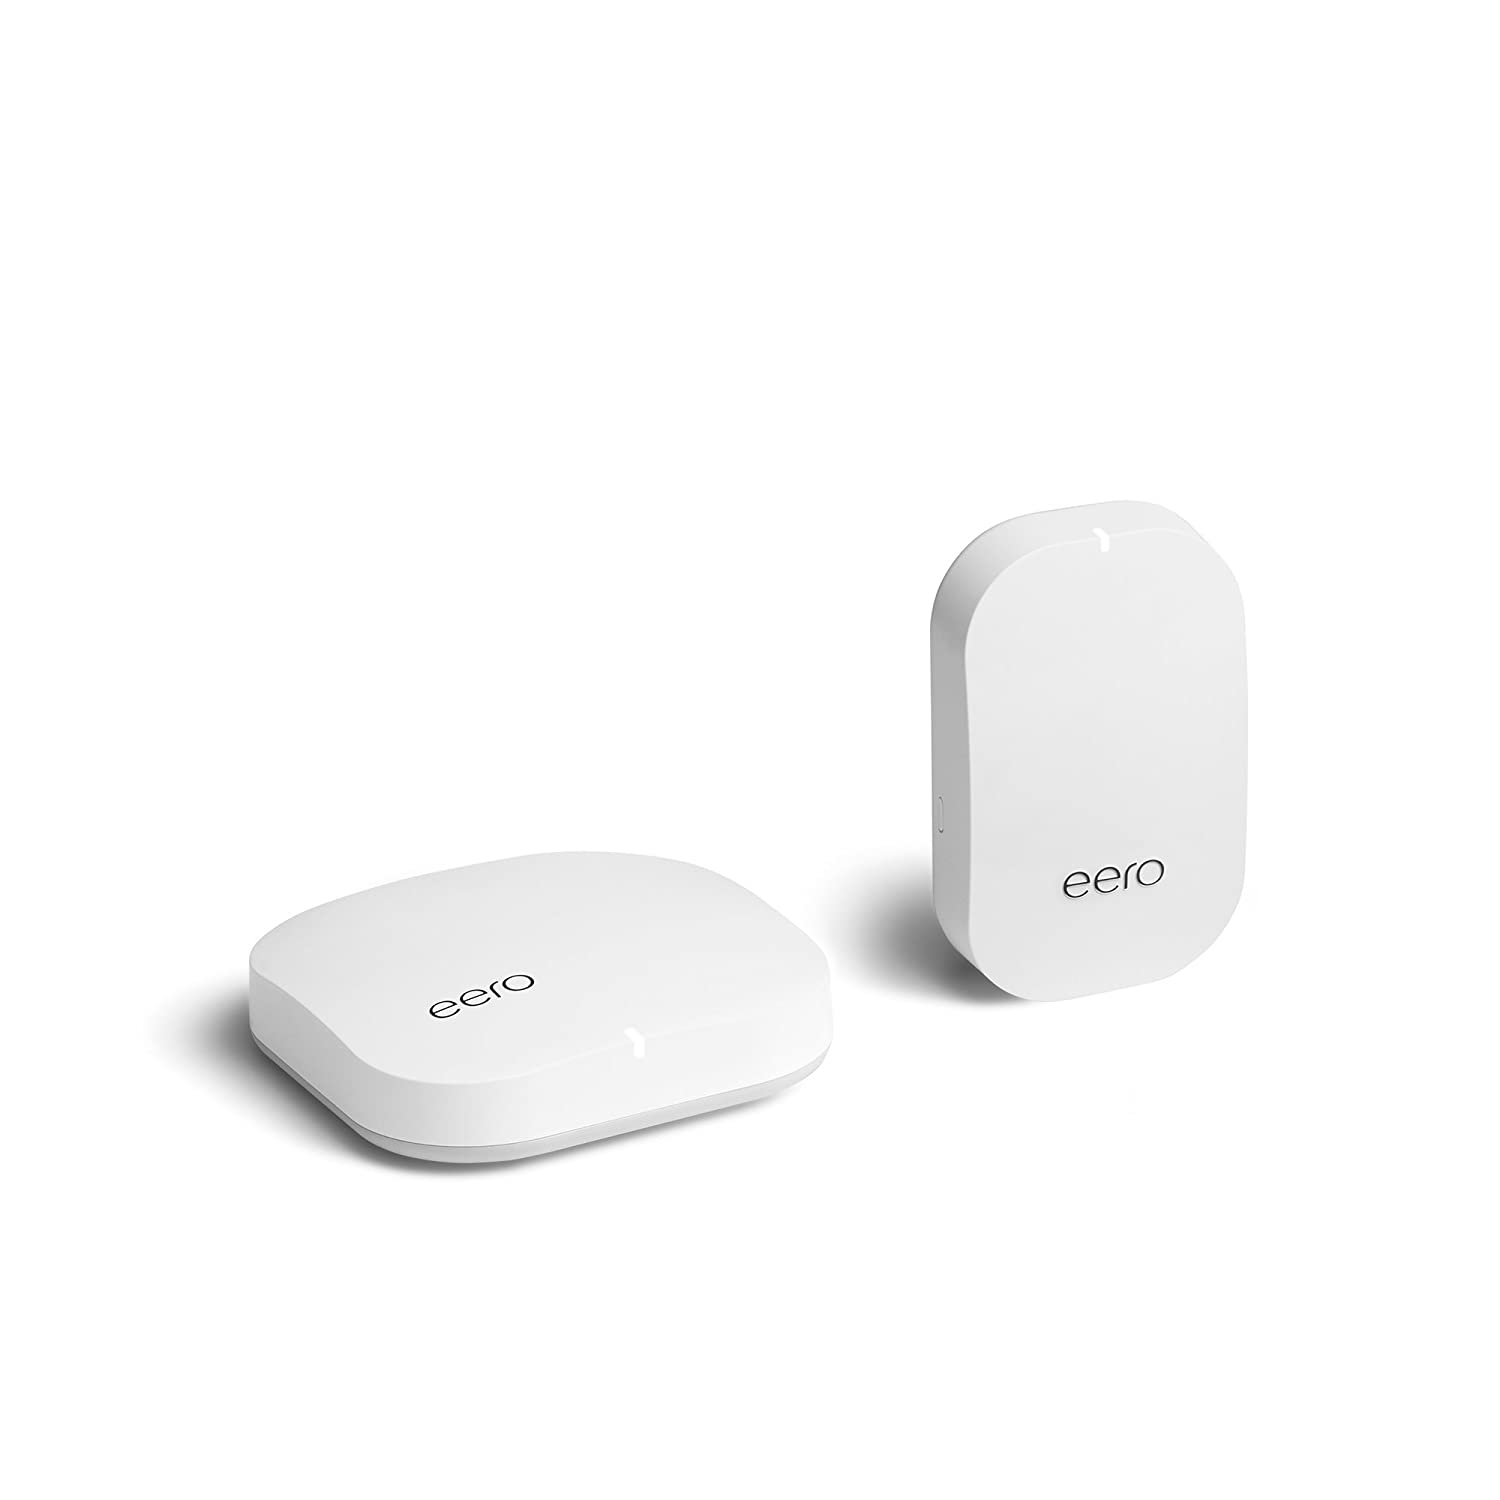 eero Home WiFi System 1 eero Pro + 1 eero Beacon Advanced Tri-Band Mesh WiFi System to Replace Traditional Routers and WiFi Ranger Extenders with eero Plus 1 Year Subscription